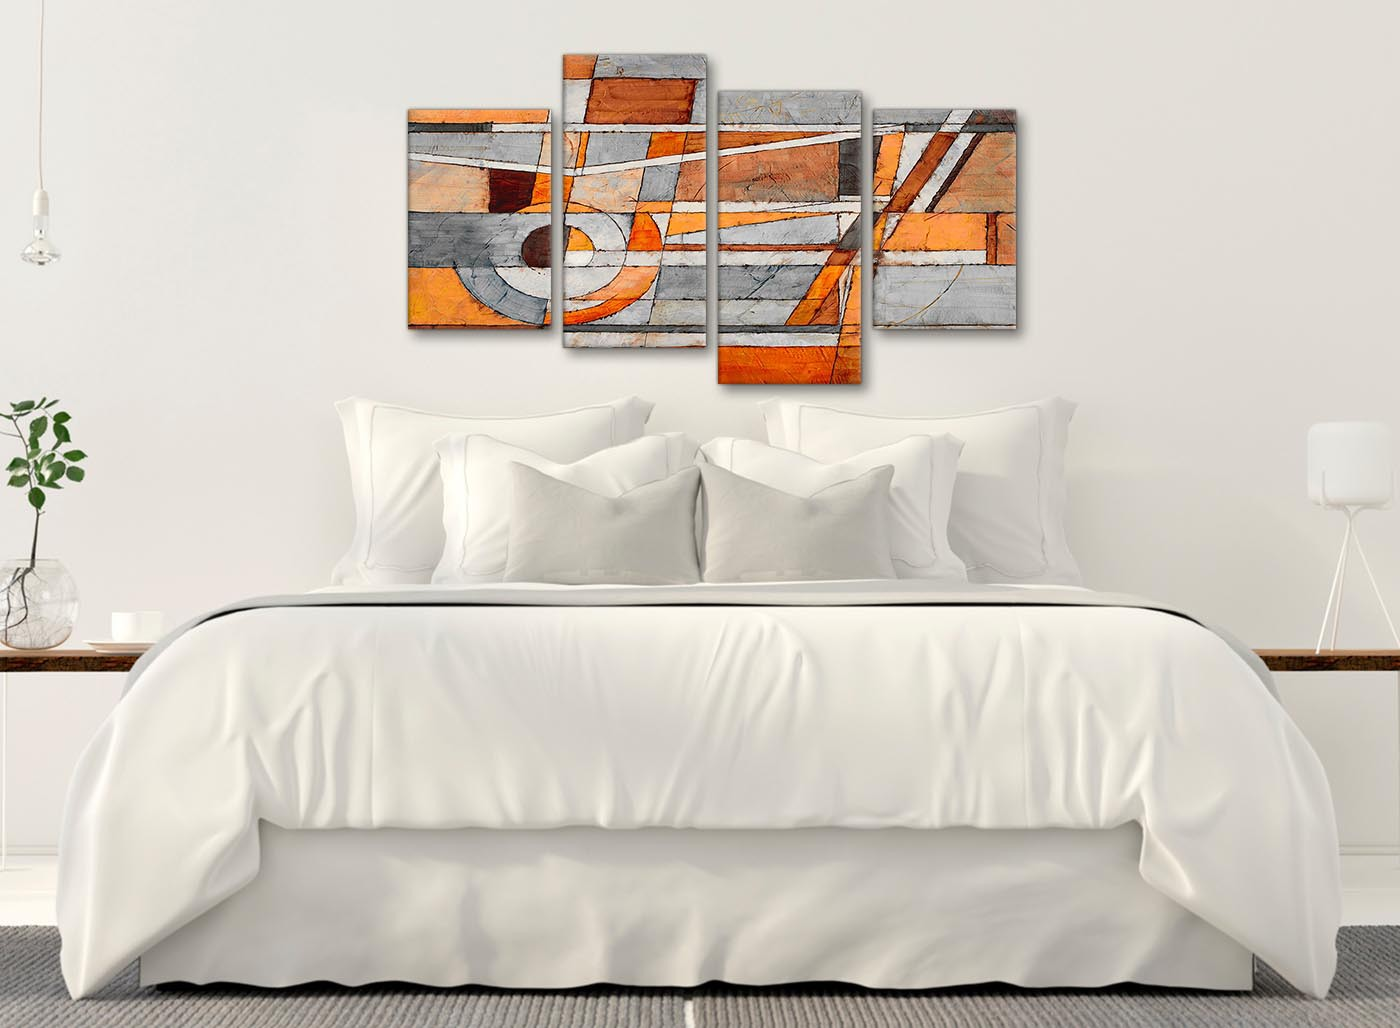 Art Décor: Large Burnt Orange Grey Painting Abstract Living Room